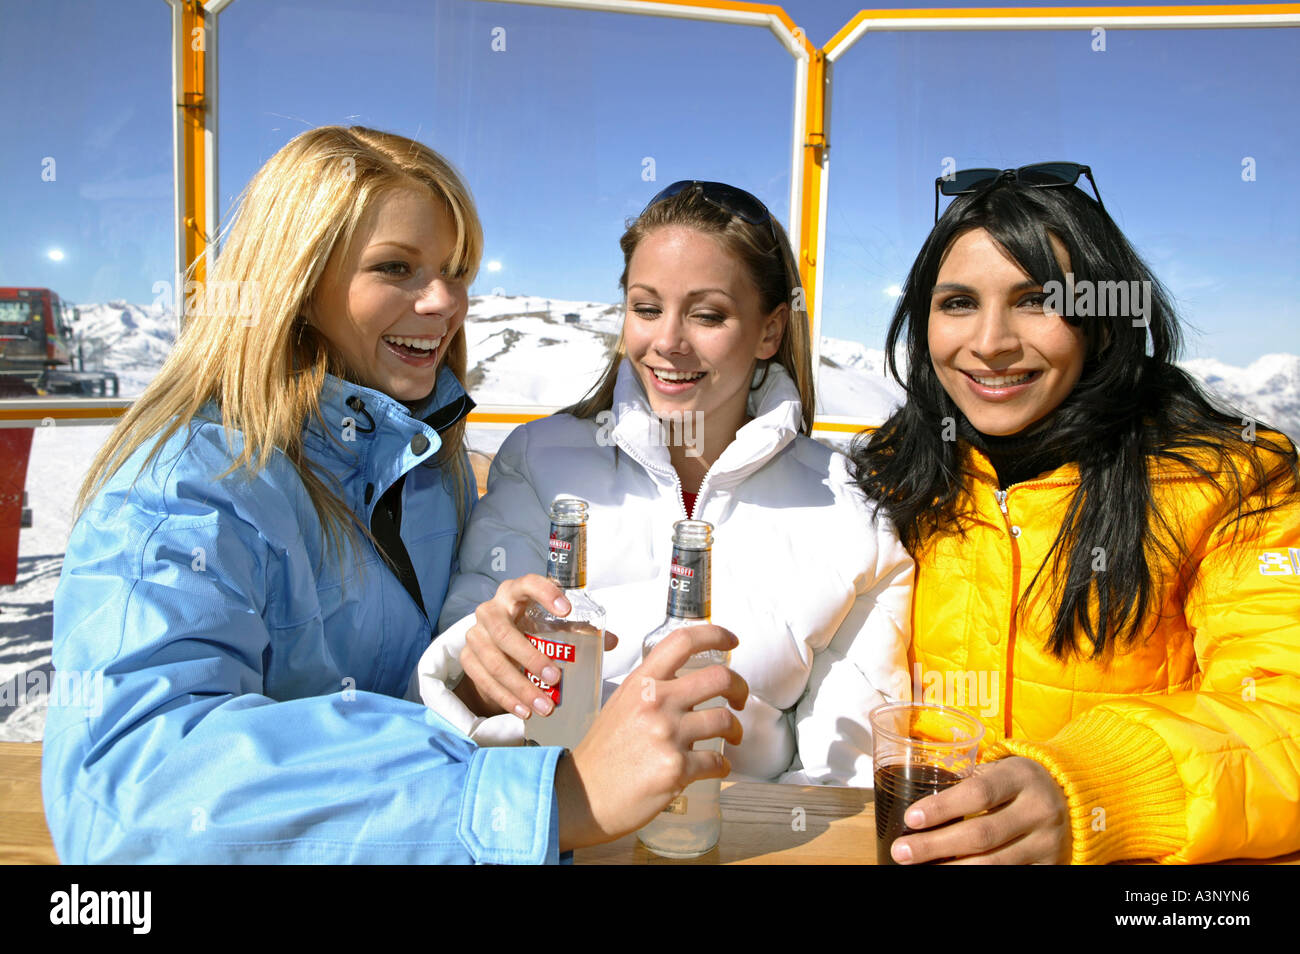 young people at apres ski in winter holiday - Stock Image